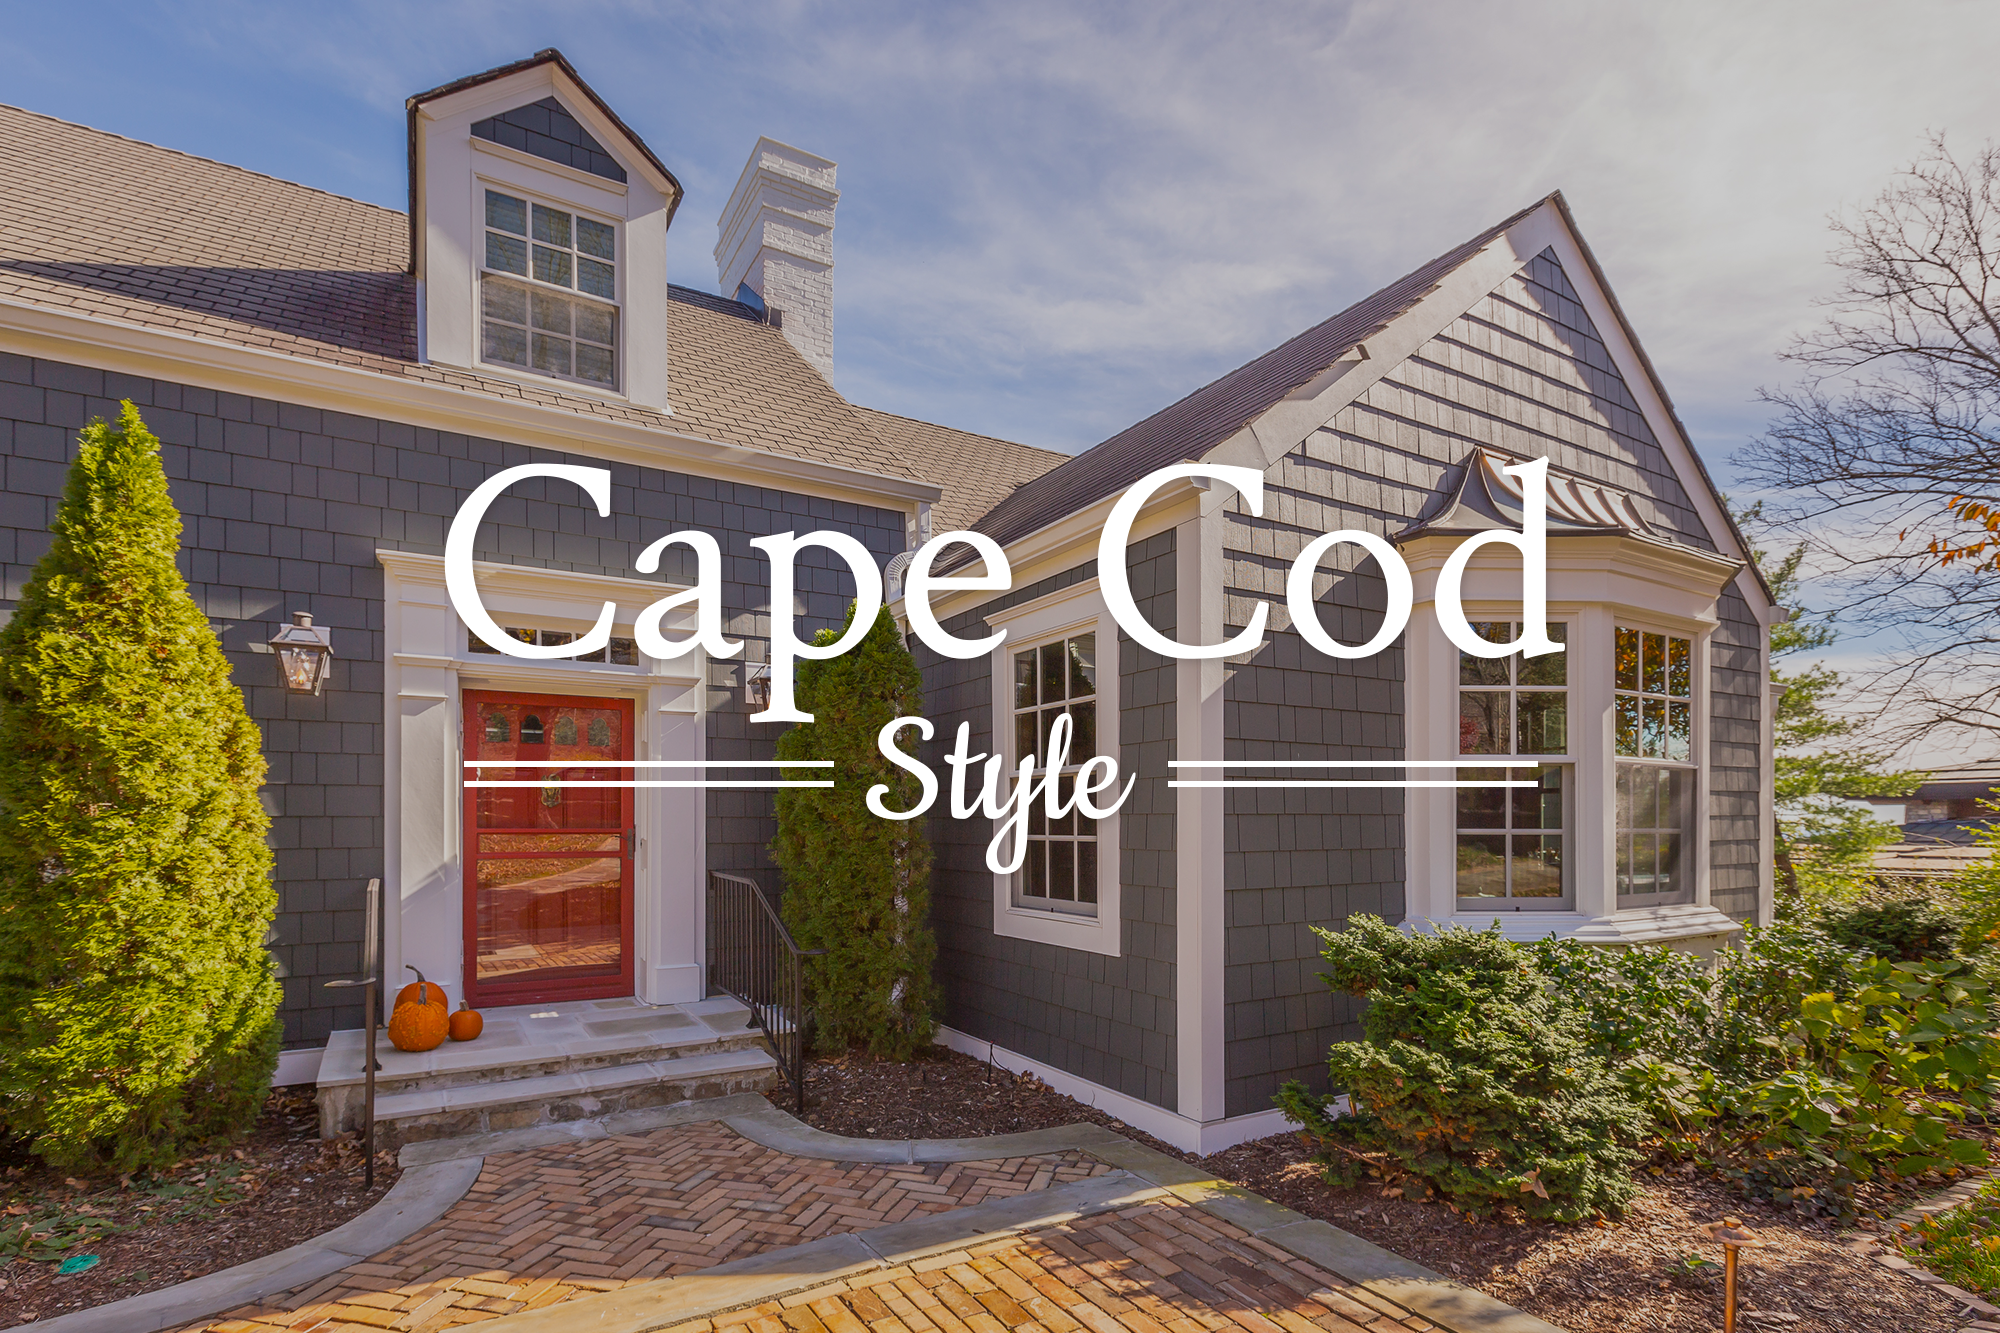 James Hardie Cape cod style picture 1